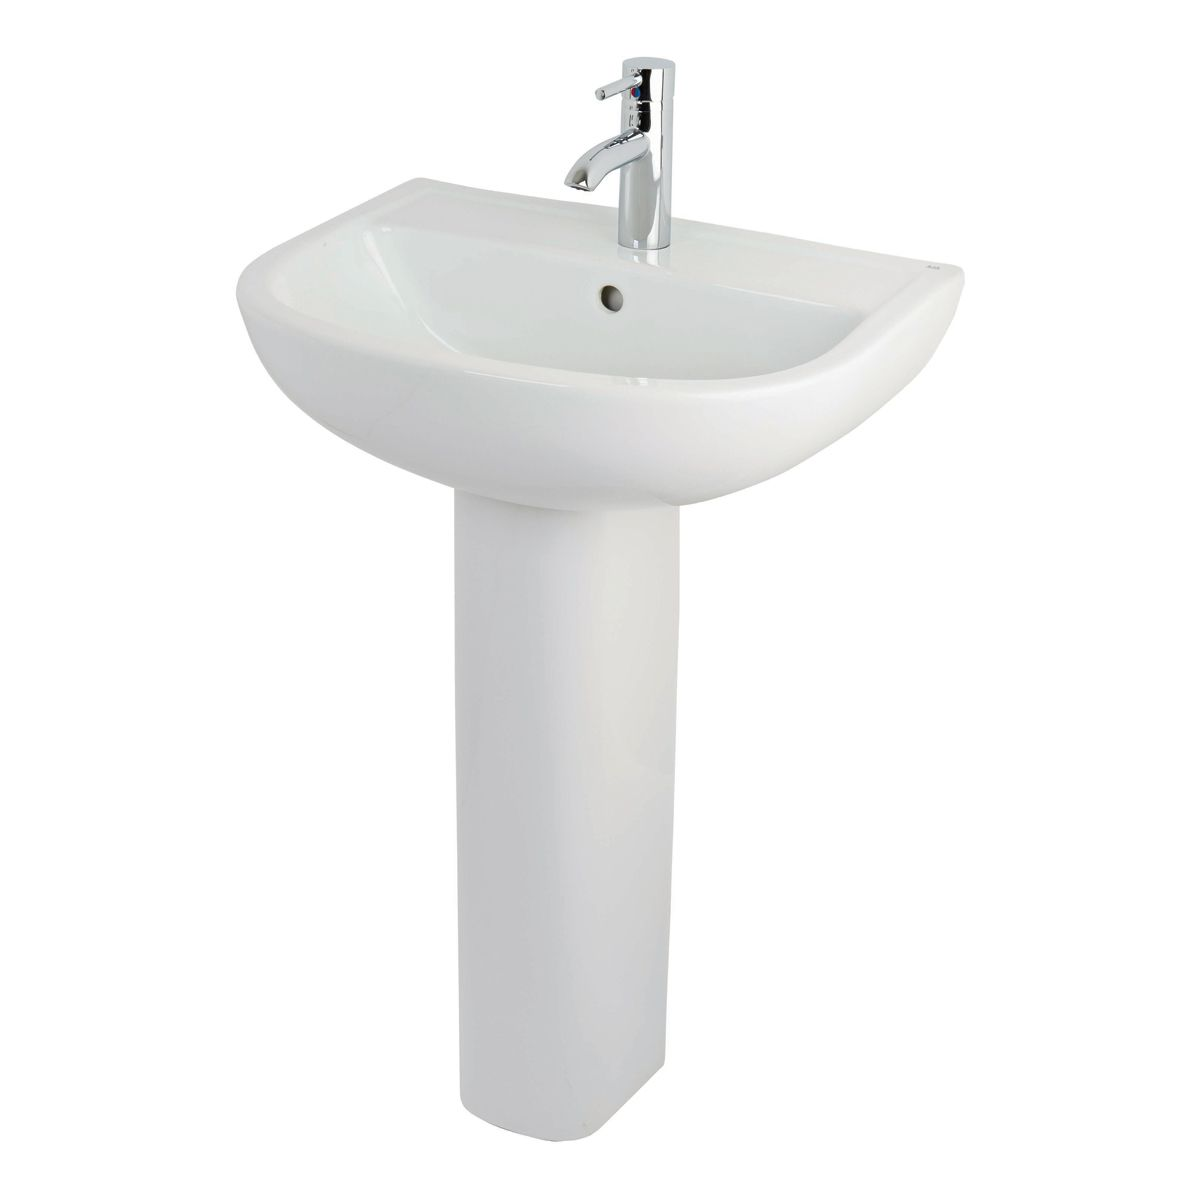 RAK Compact 1 Tap Hole Basin with Full Pedestal